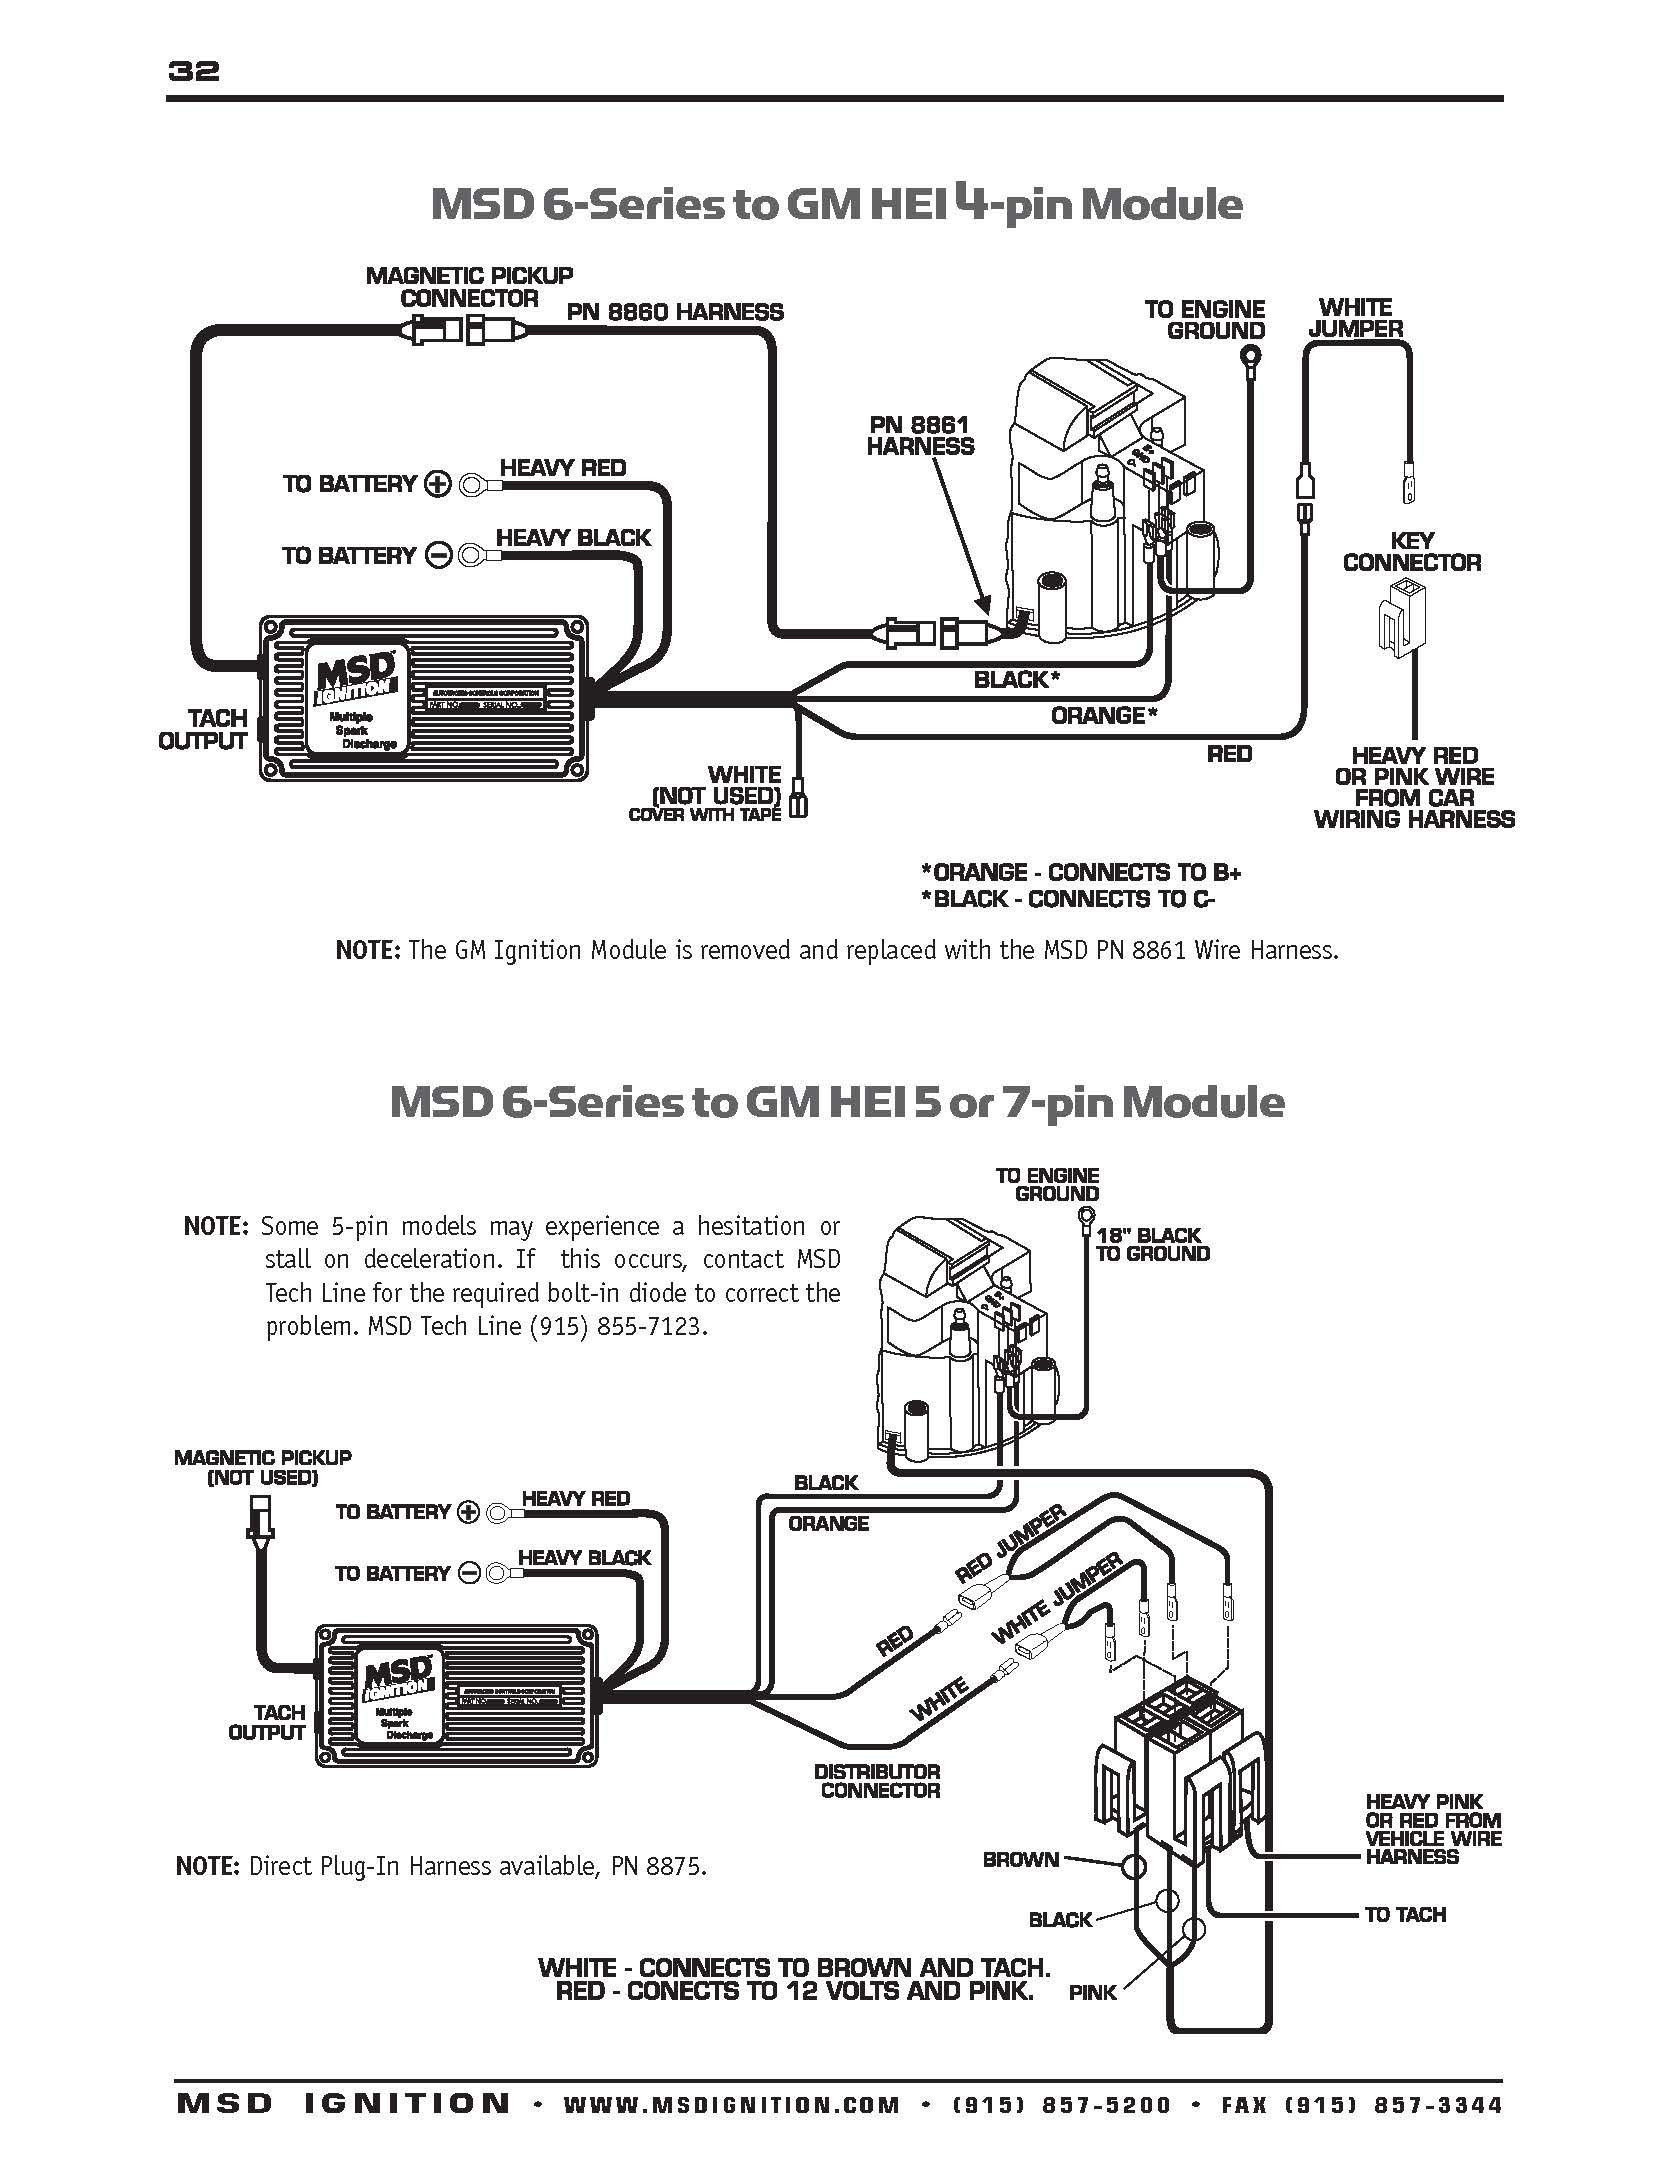 msd 6al part number 6420 wiring diagram Download-350 hei msd wiring diagram autos weblog wire center u2022 rh casiaroc co msd 6a wiring diagram gm 2-b